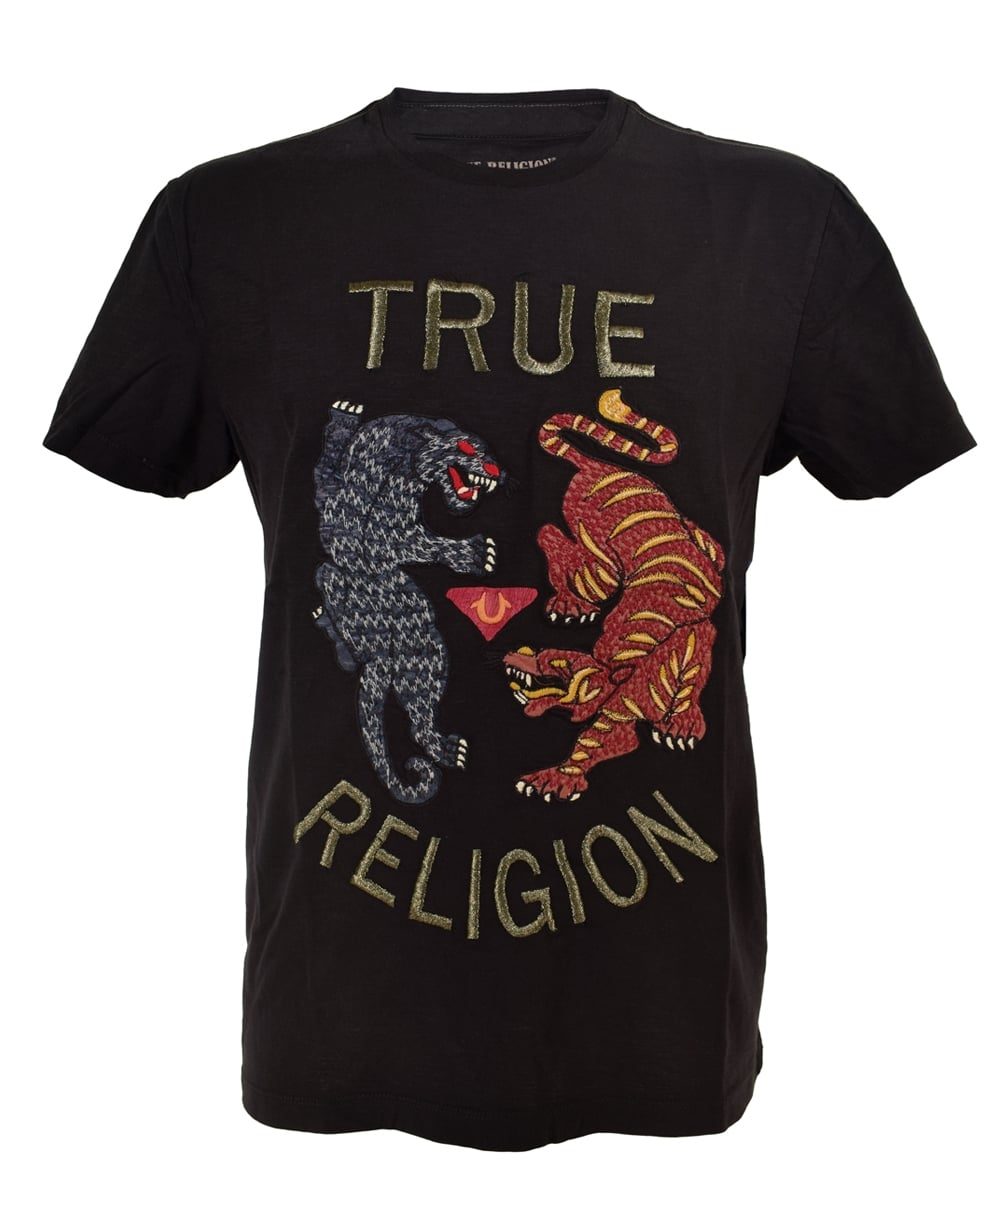 true religion black panther amp tiger tshirt true